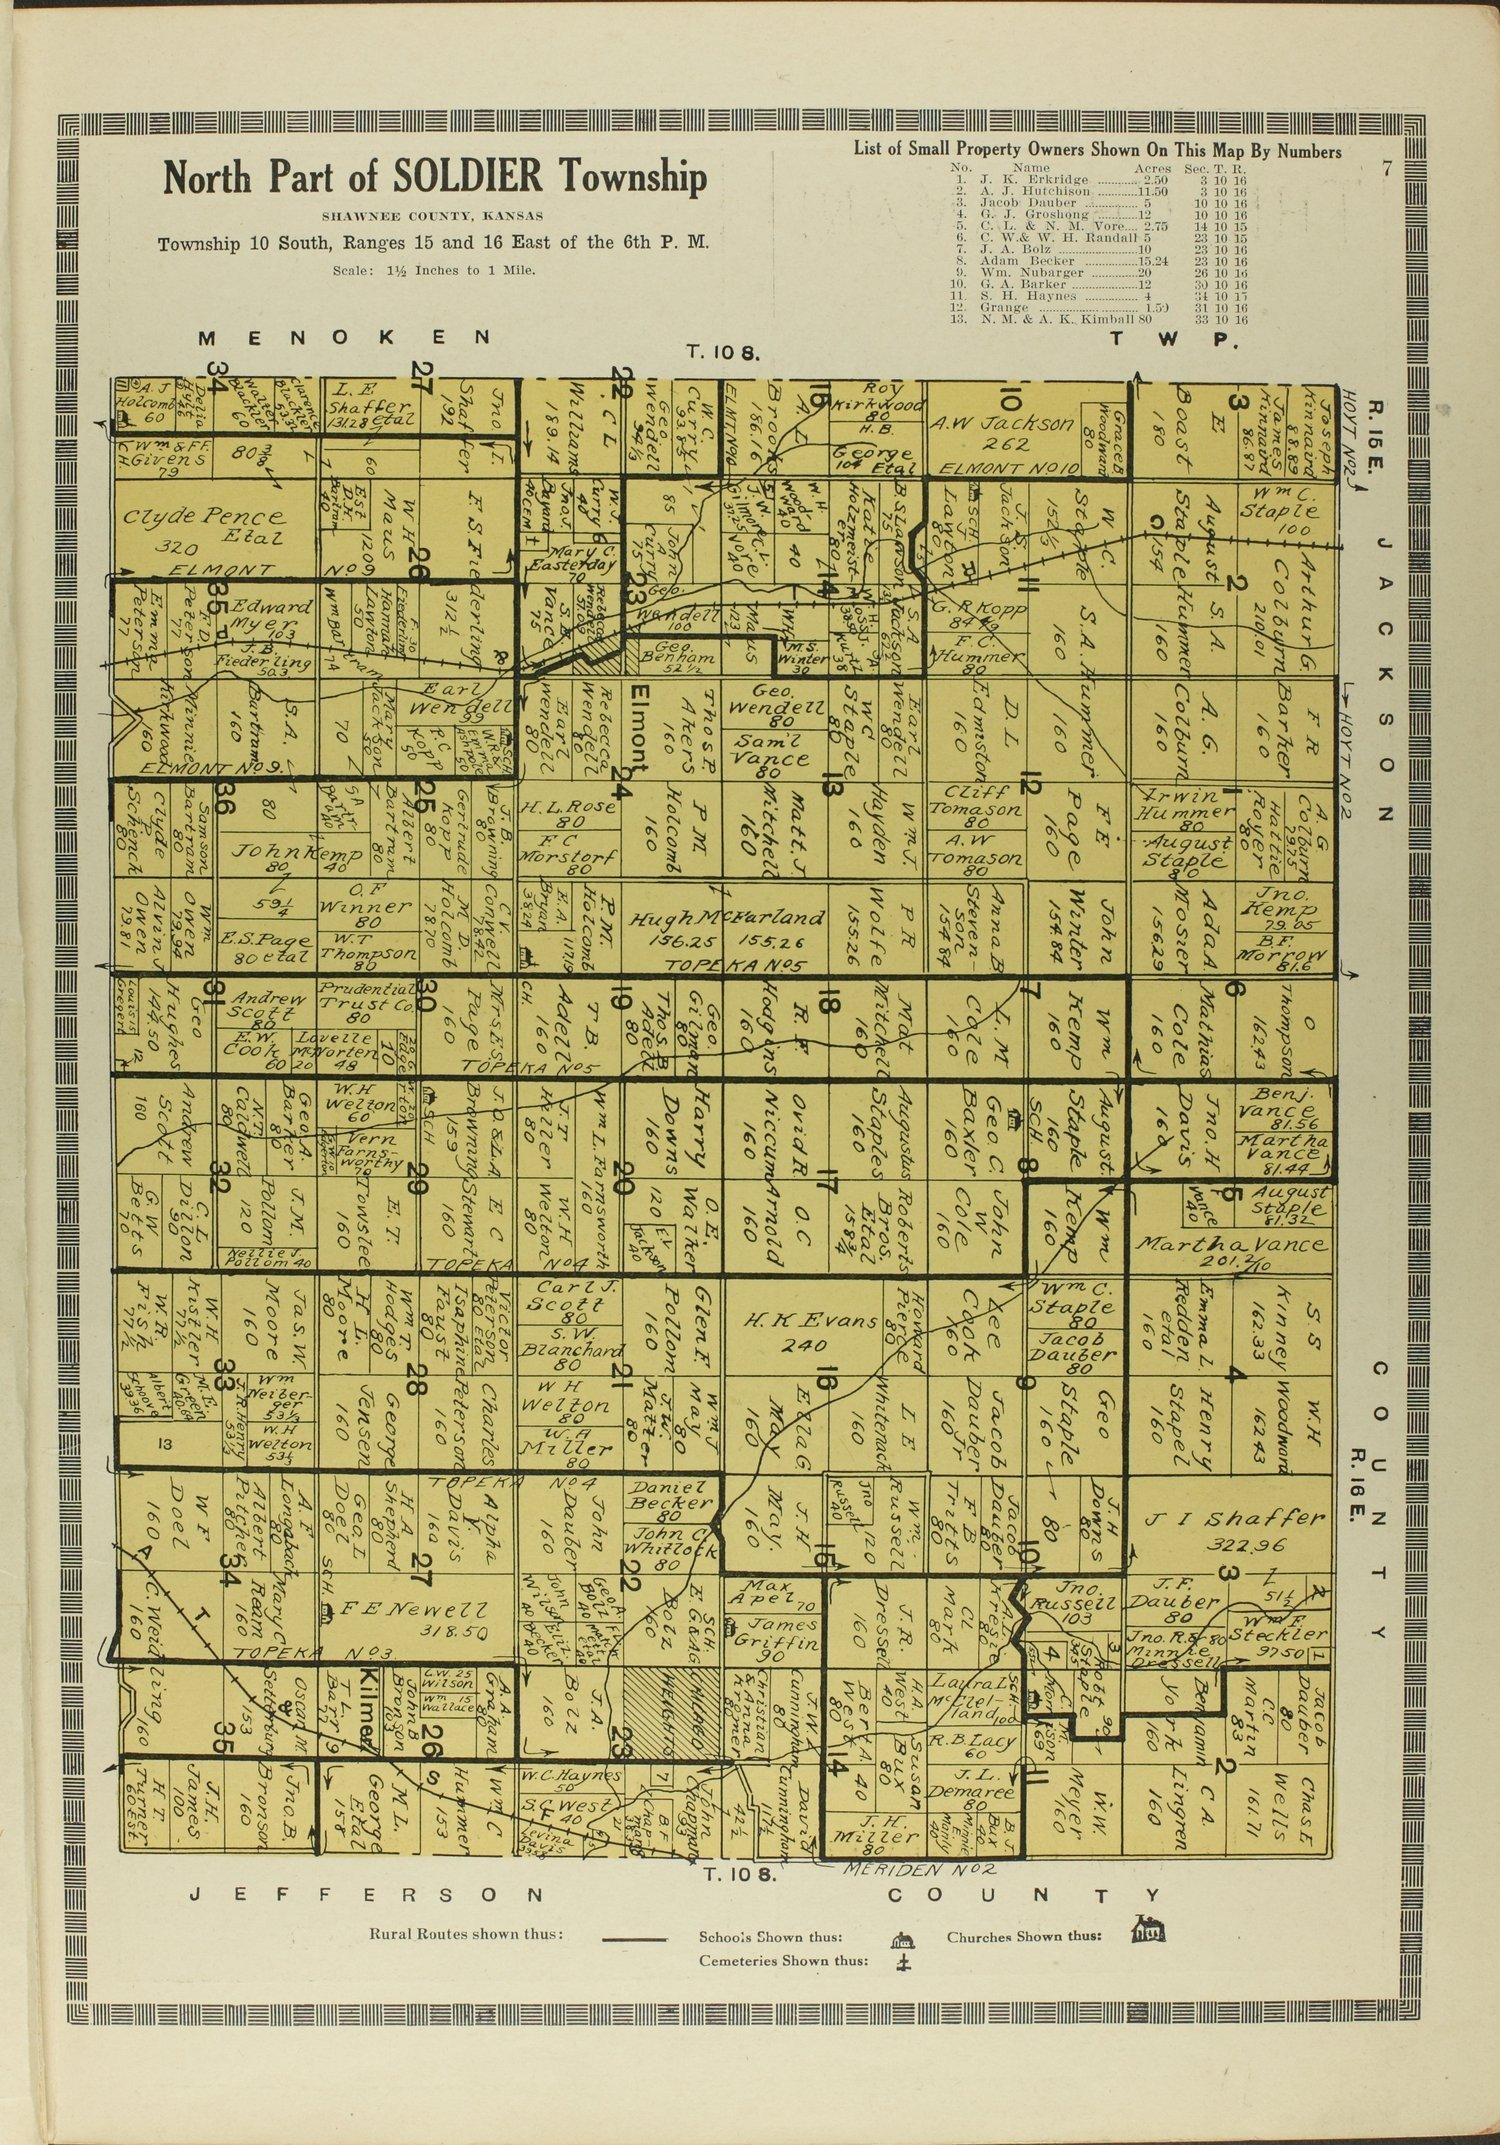 Atlas and plat book of Shawnee County, Kansas - 7